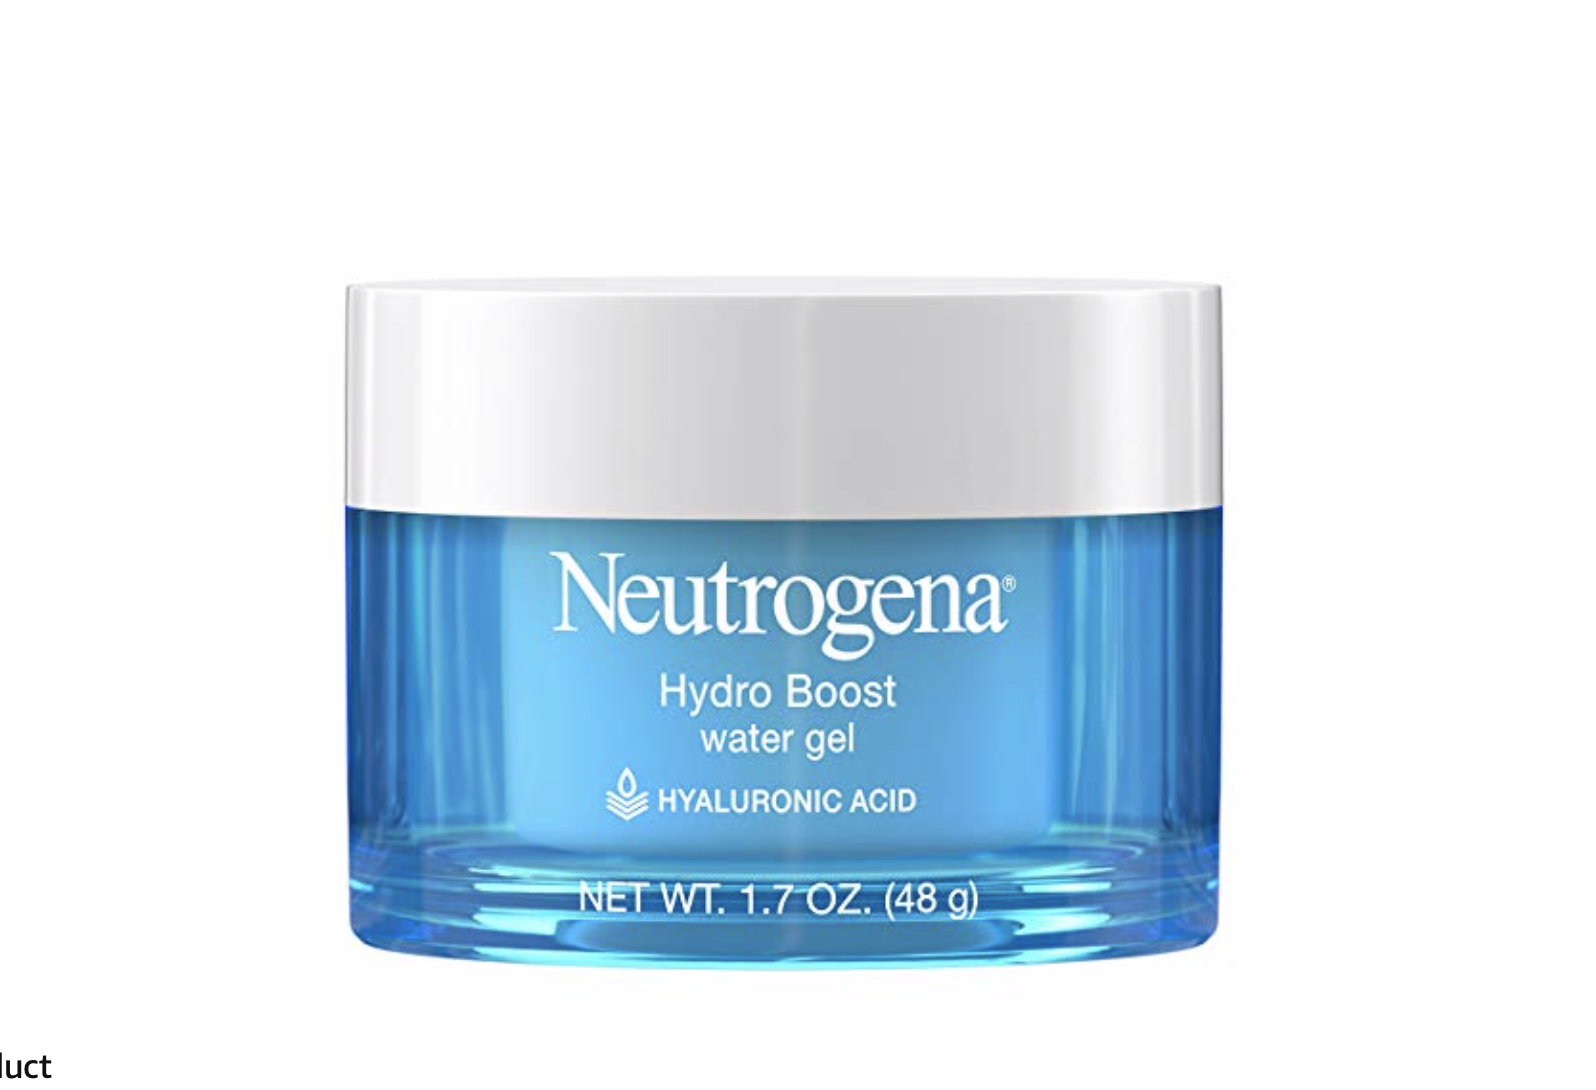 Neutrogena Hydro Boost Gel (for the dry, winter months)